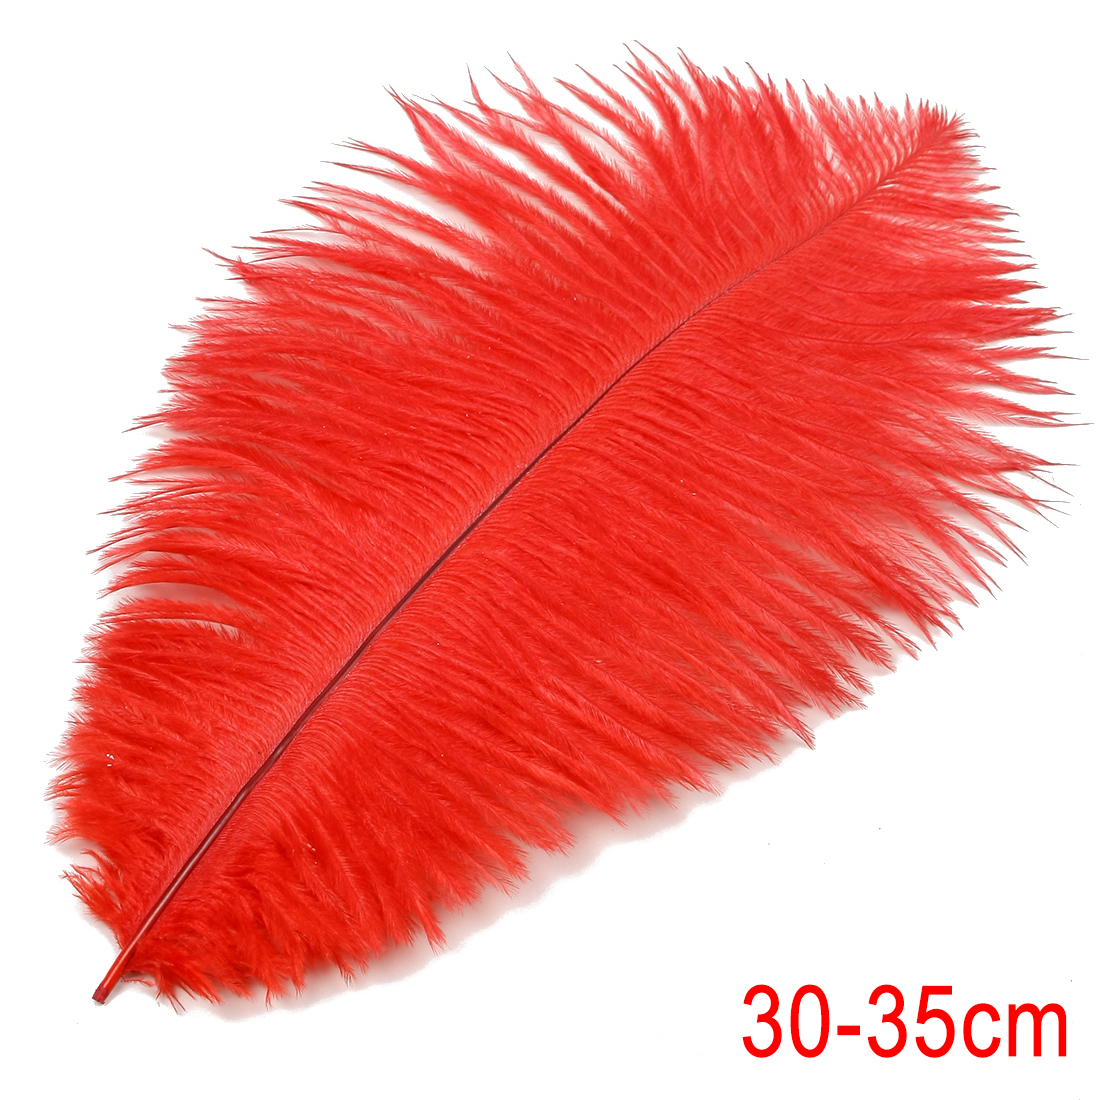 12-14inch / 30-35cm Ostrich Feather for Wedding Party Decoration Red